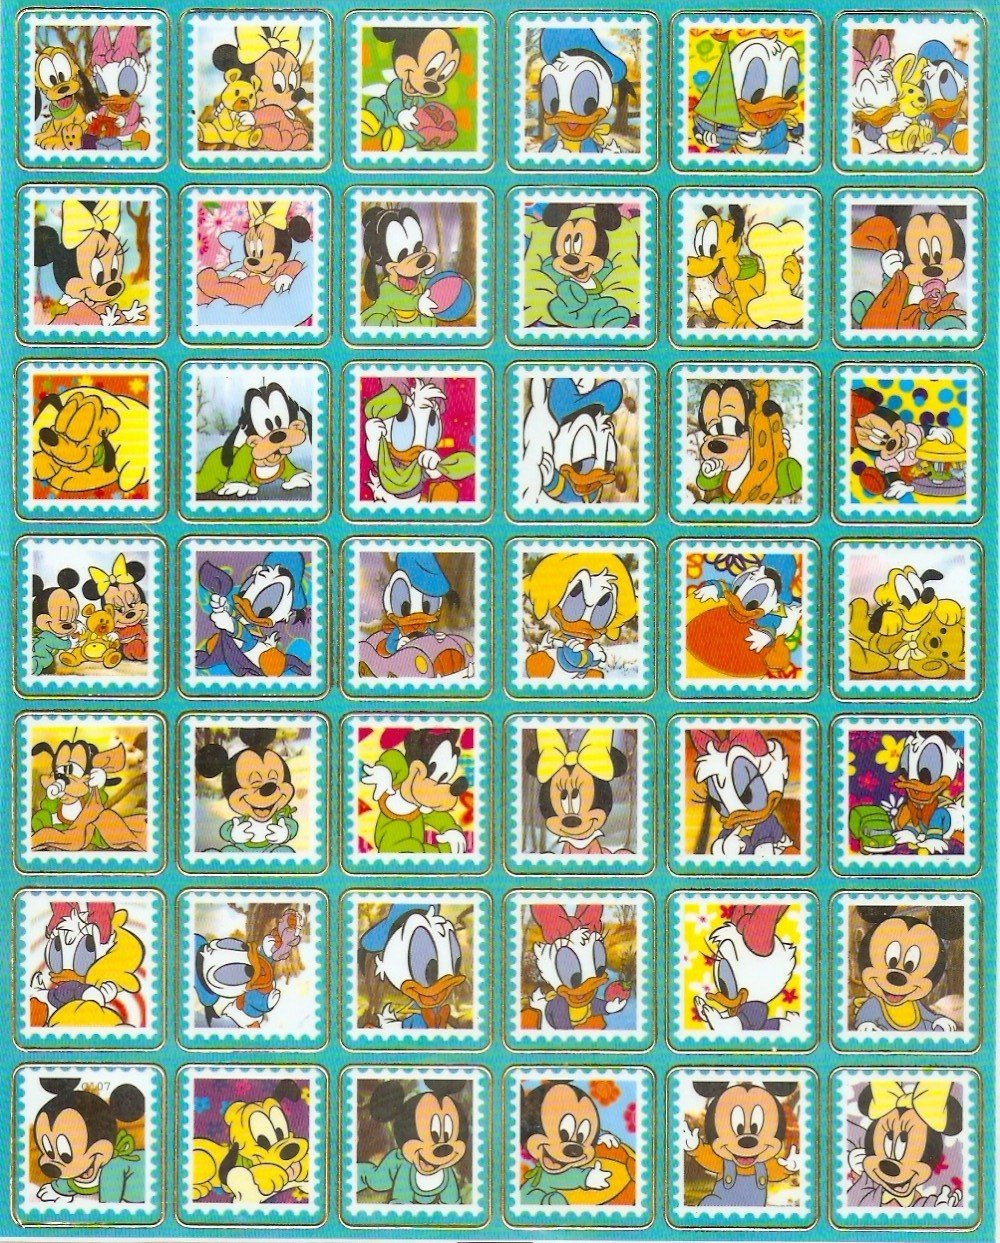 10 Big sheets Baby Mickey Sticker Buy 2 lots Bonus 1 #c107